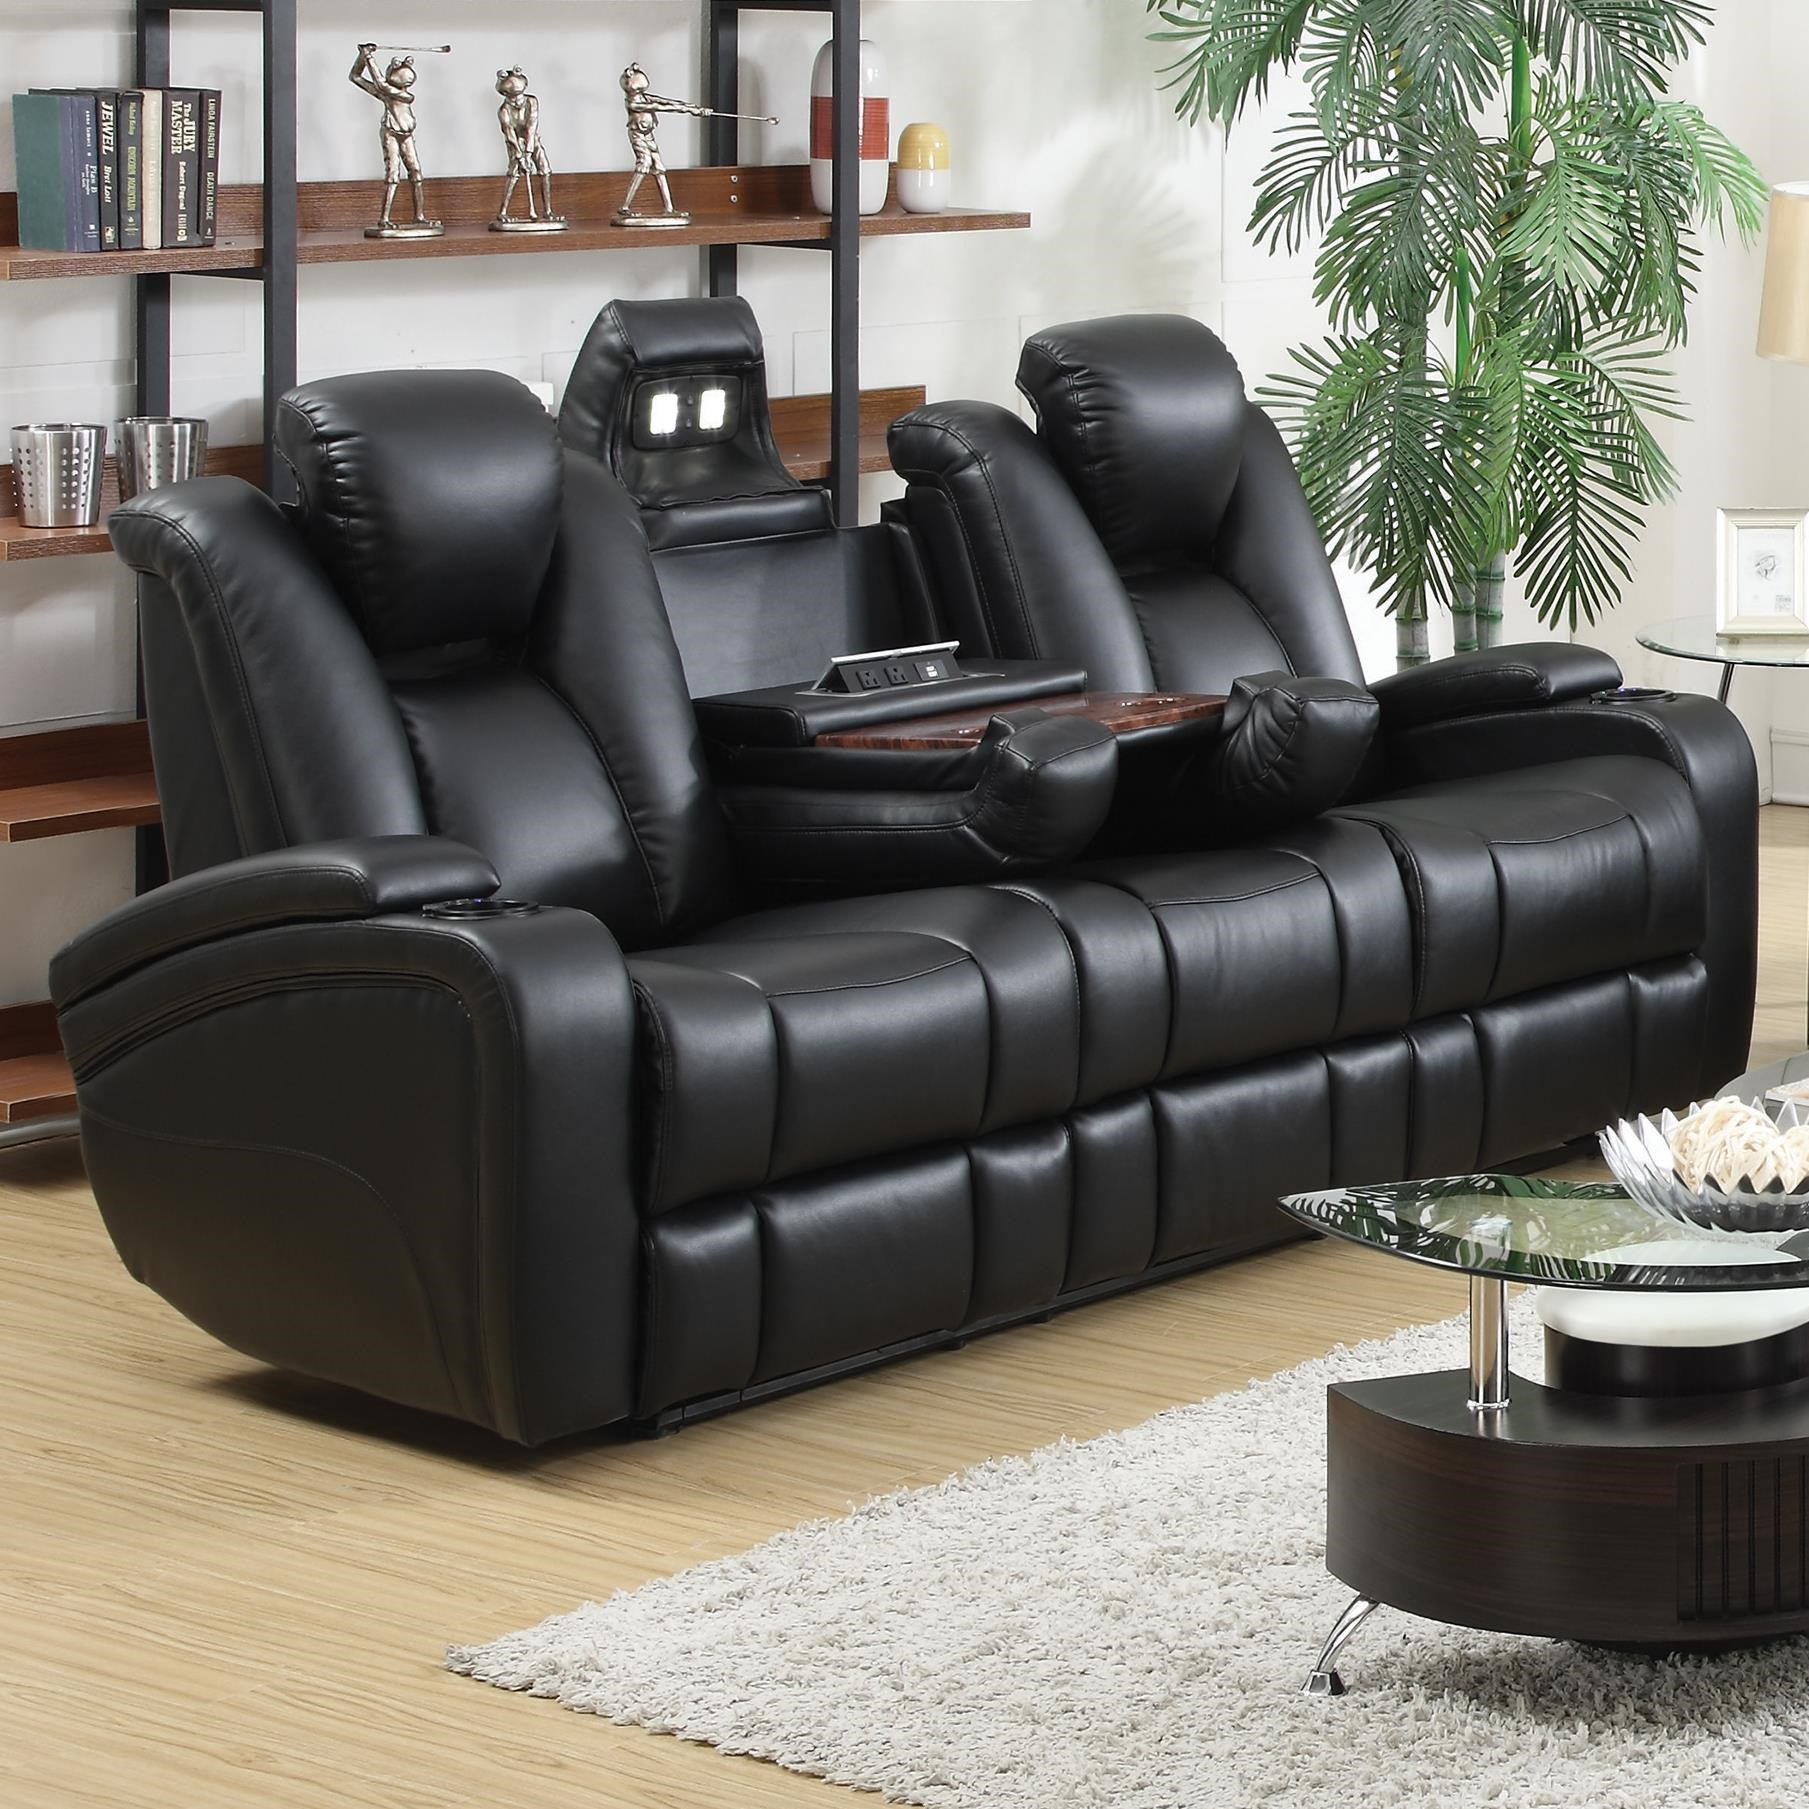 Coaster Delange Reclining Power Sofa with Adjustable Headrests u0026 Storage in Armrests - Coaster Fine Furniture : couches with recliners built in - islam-shia.org